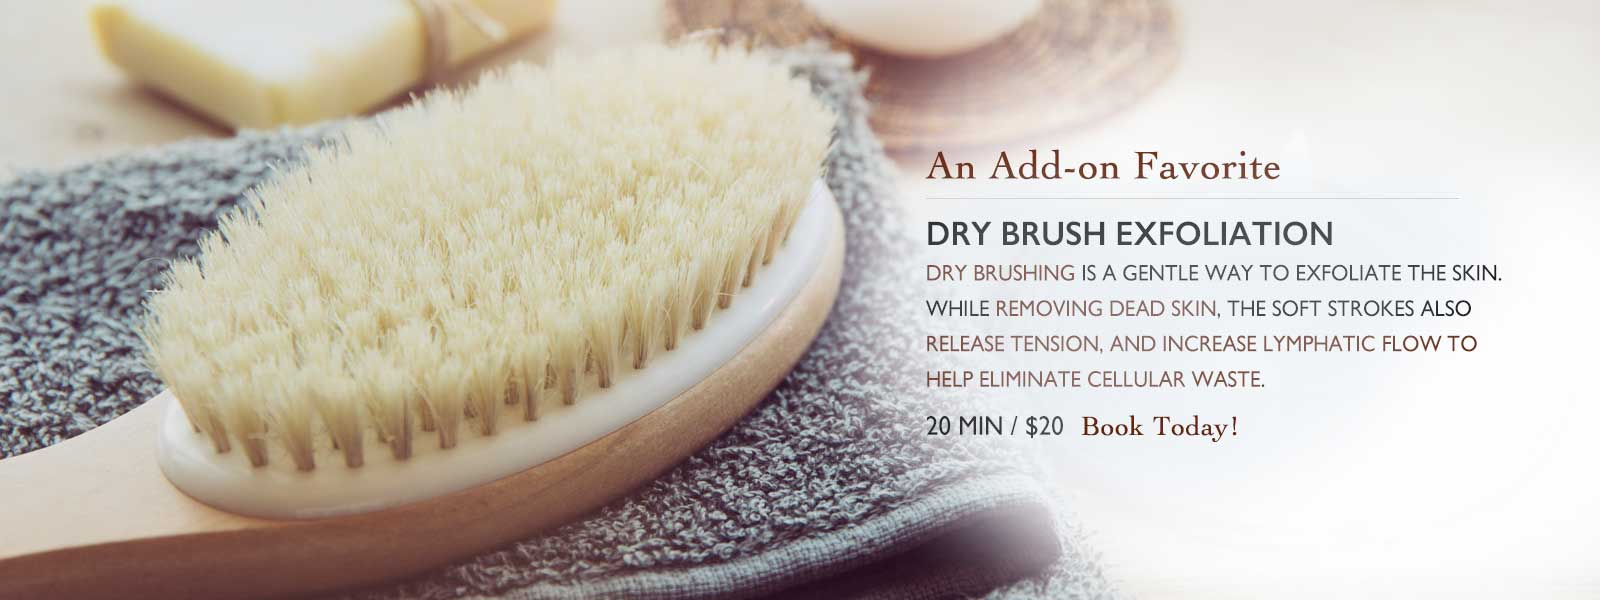 Dry brushing is a gentle way to exfoliate the skin. So gentle and peaceful it is often described as meditative